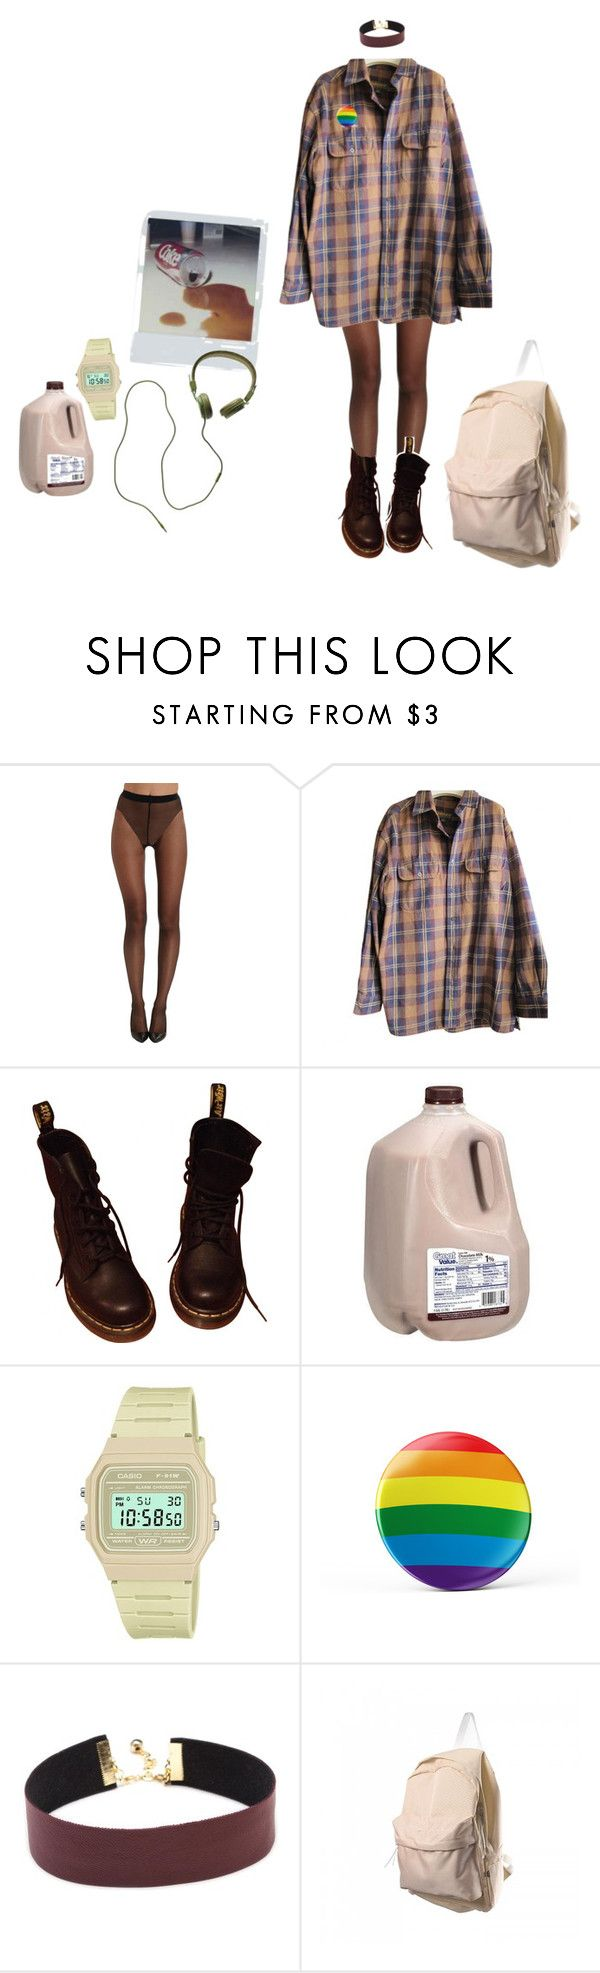 """chilling"" by wonder-land-i ❤ liked on Polyvore featuring Wolford, Timberland, Dr. Martens, Casio, Andy Warhol and Madewell"